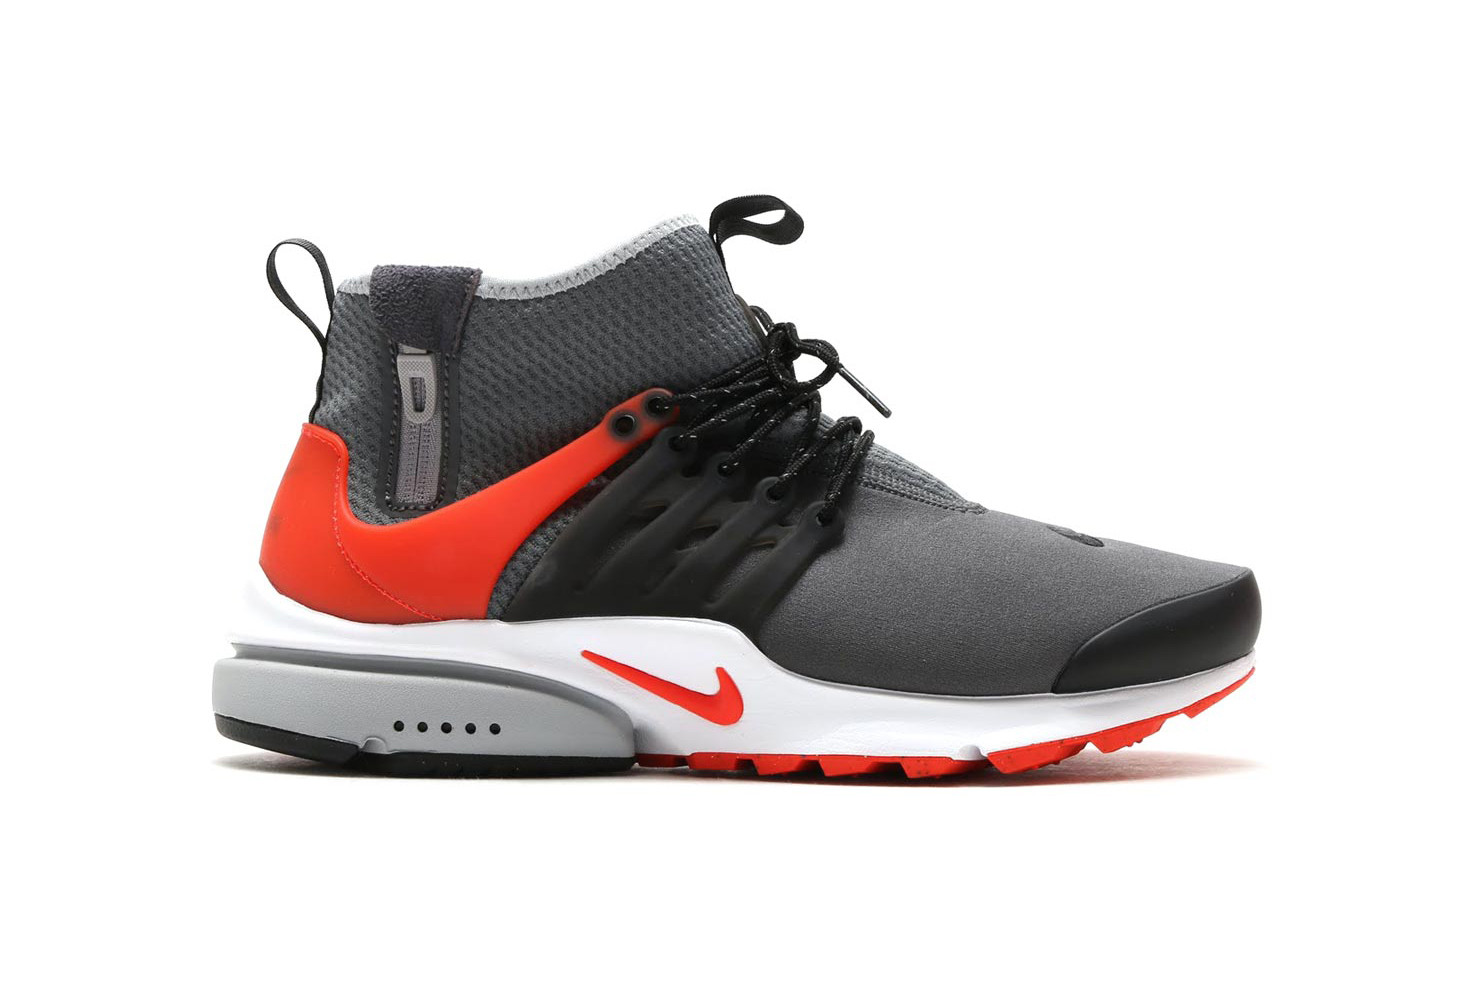 a097e9293d697c nike air presto mid utility cool grey shoes Cold-weather ...